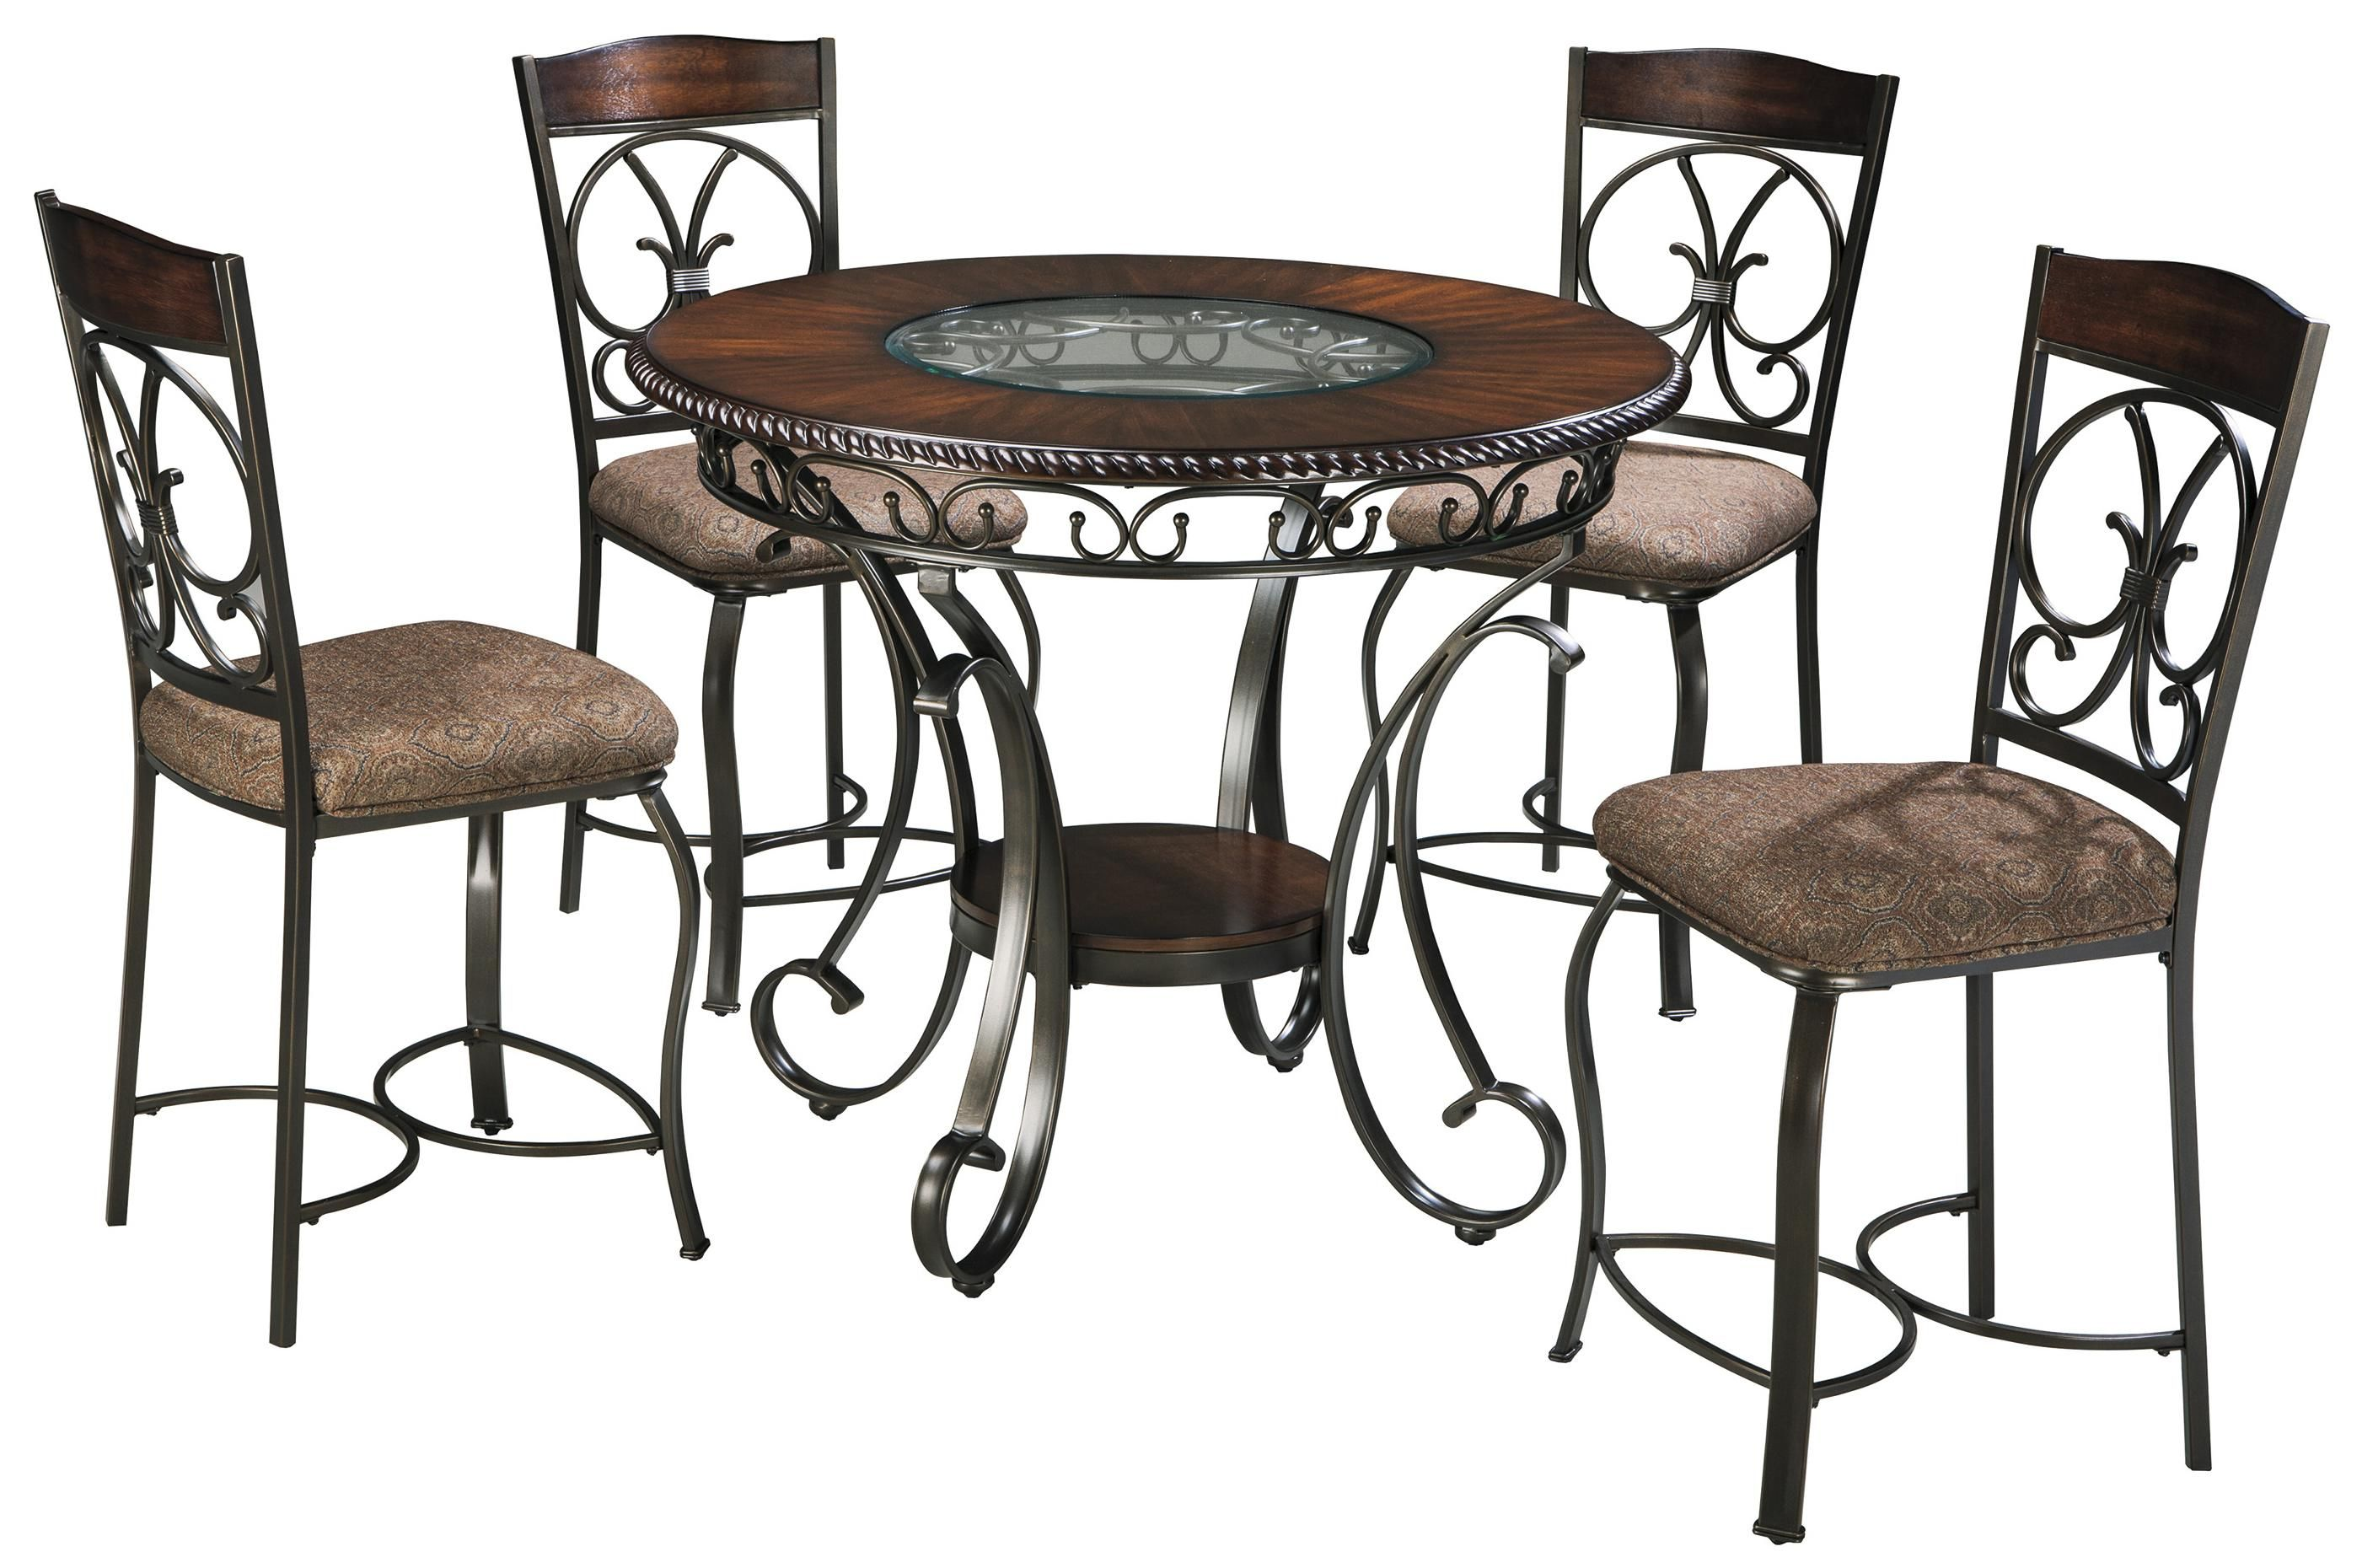 Glambrey Round Counter Table And 4 Barstool Set With Metal